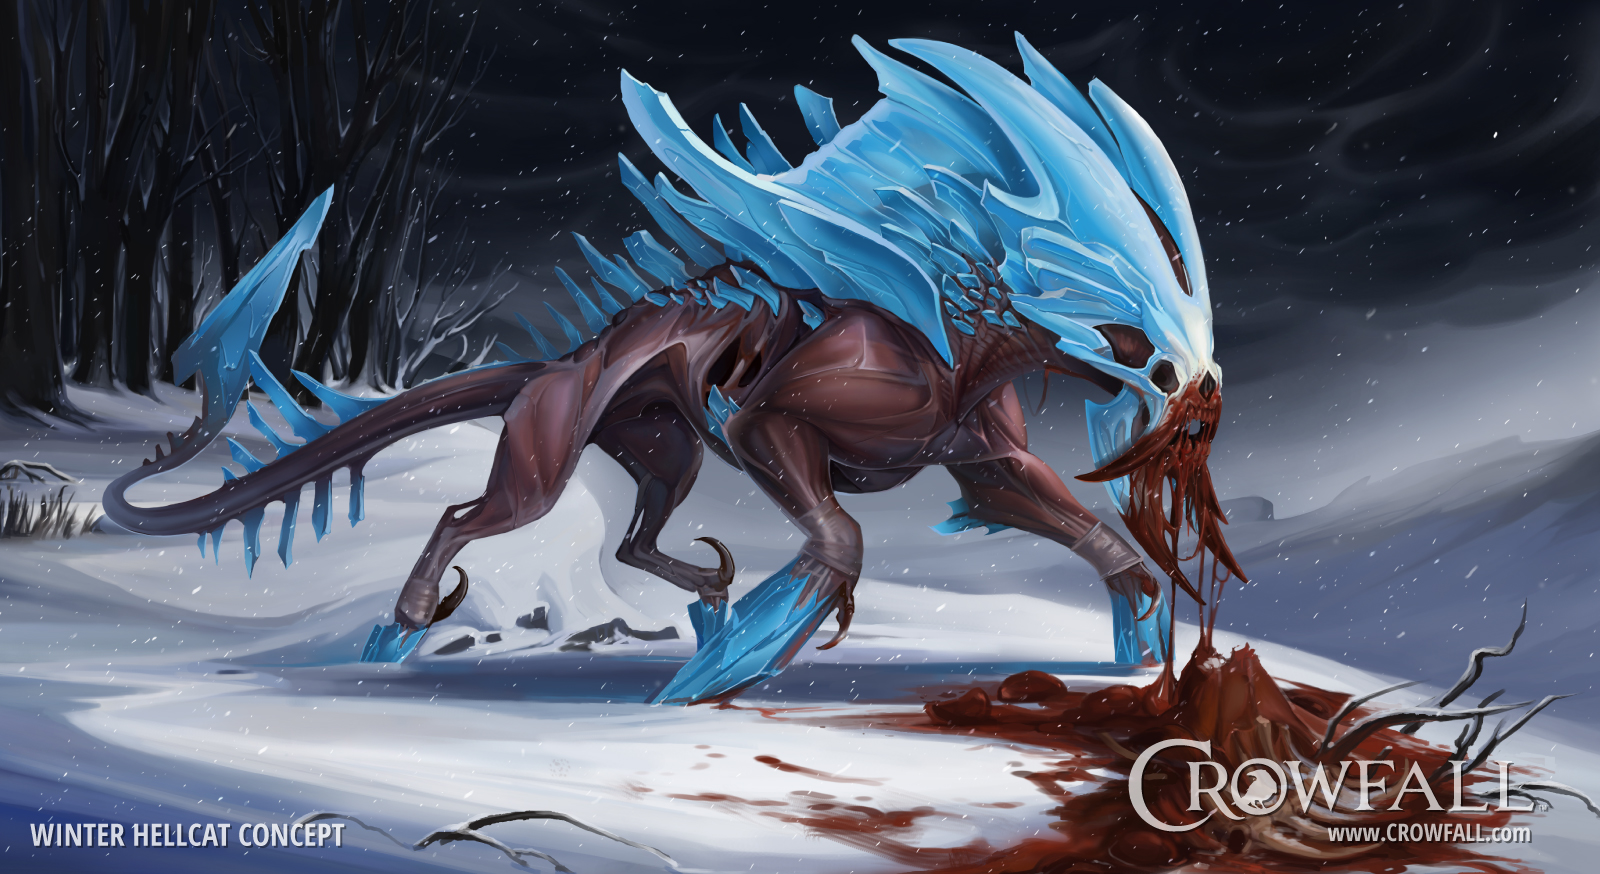 Crowfall Winter Hellcat Concept